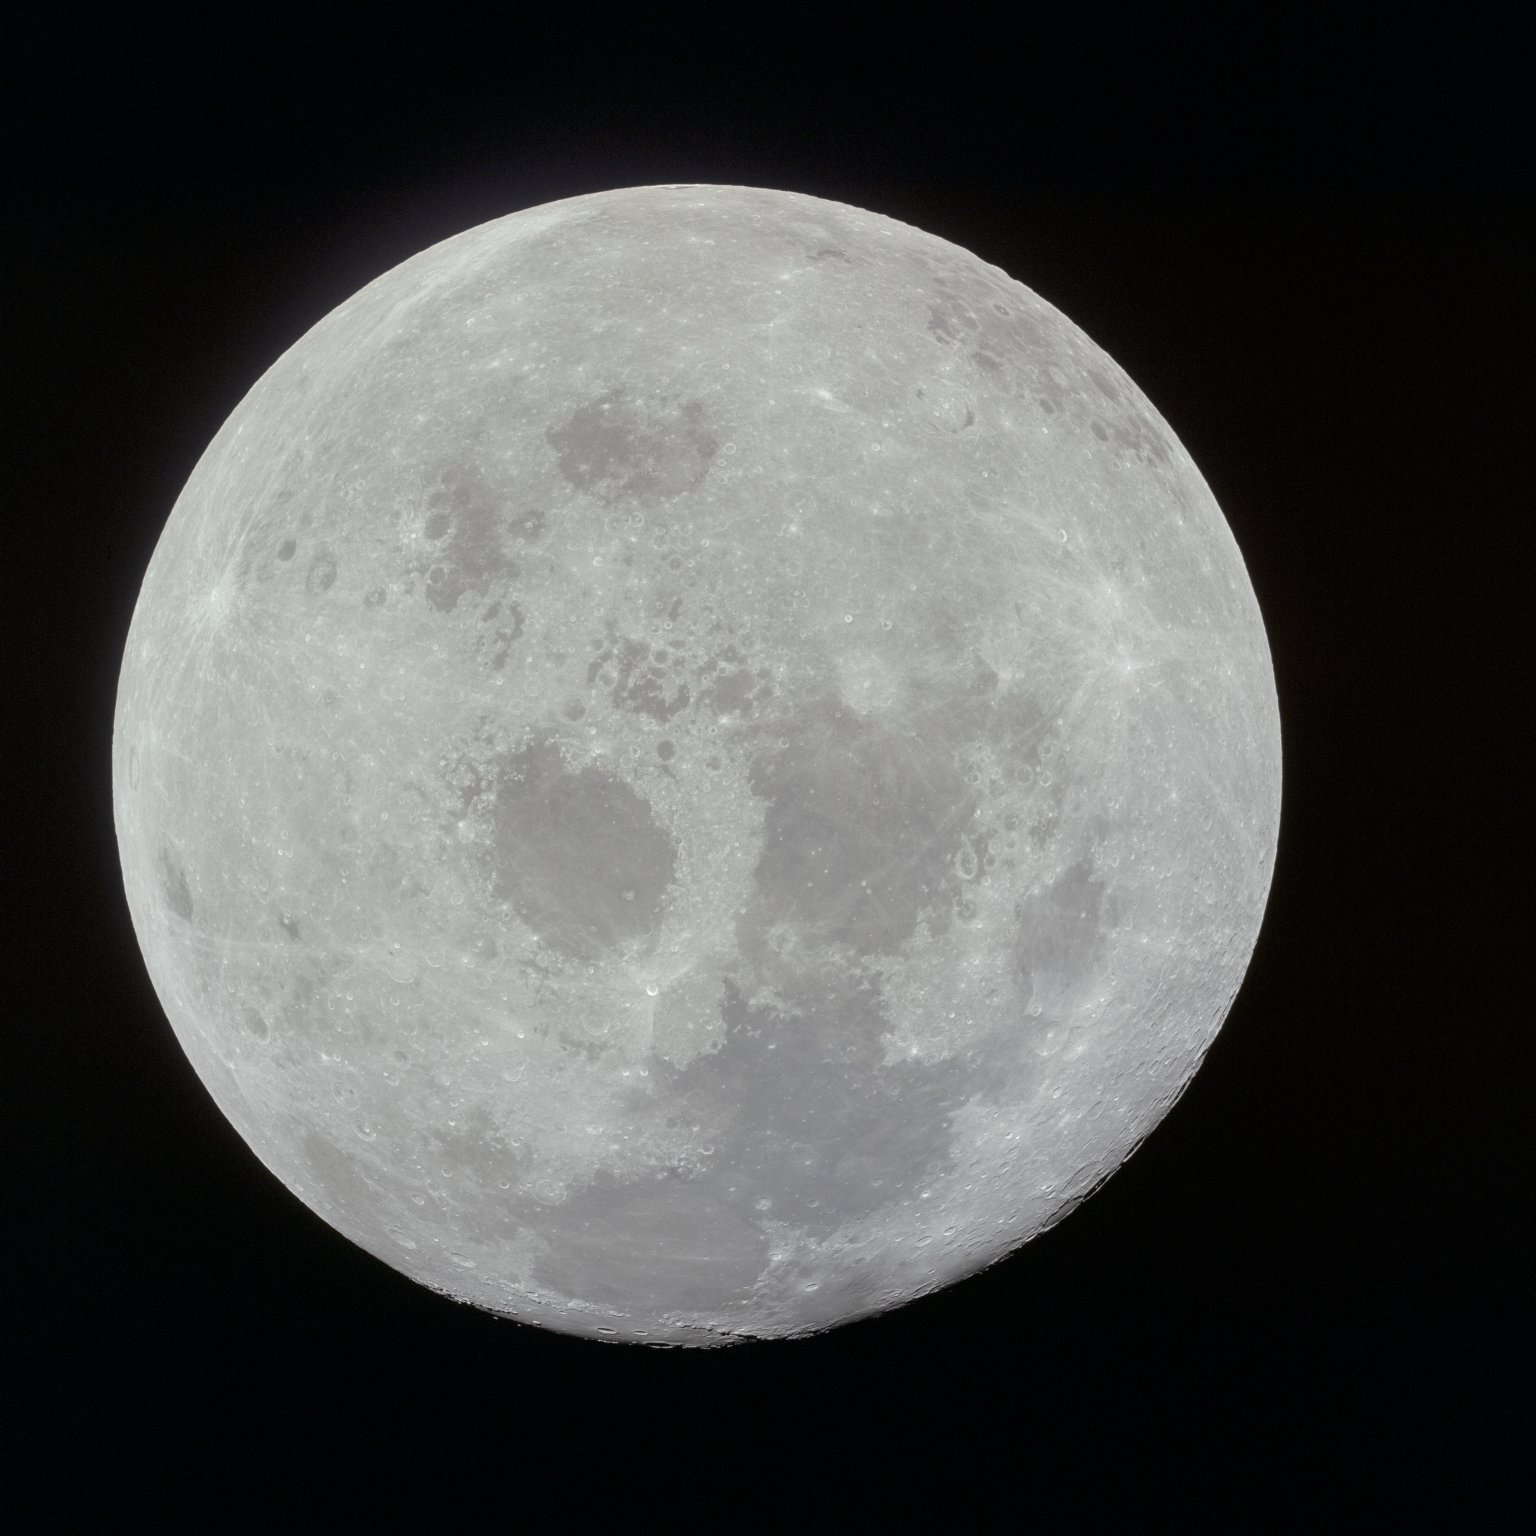 Apollo 11 Mission image - View of Moon